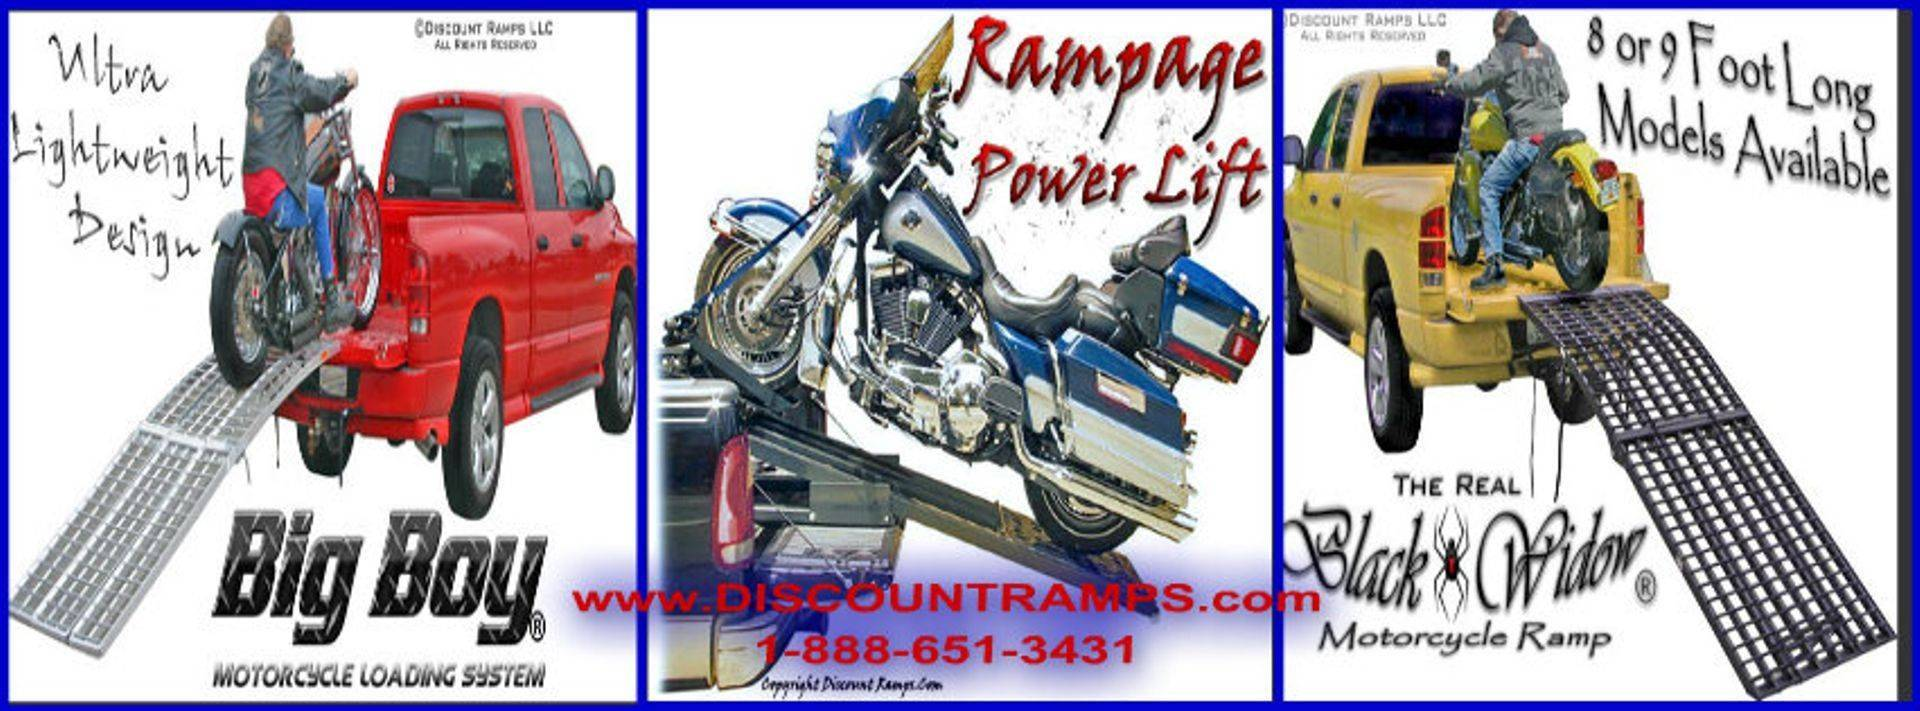 discountramps.com, motorcycle ramps